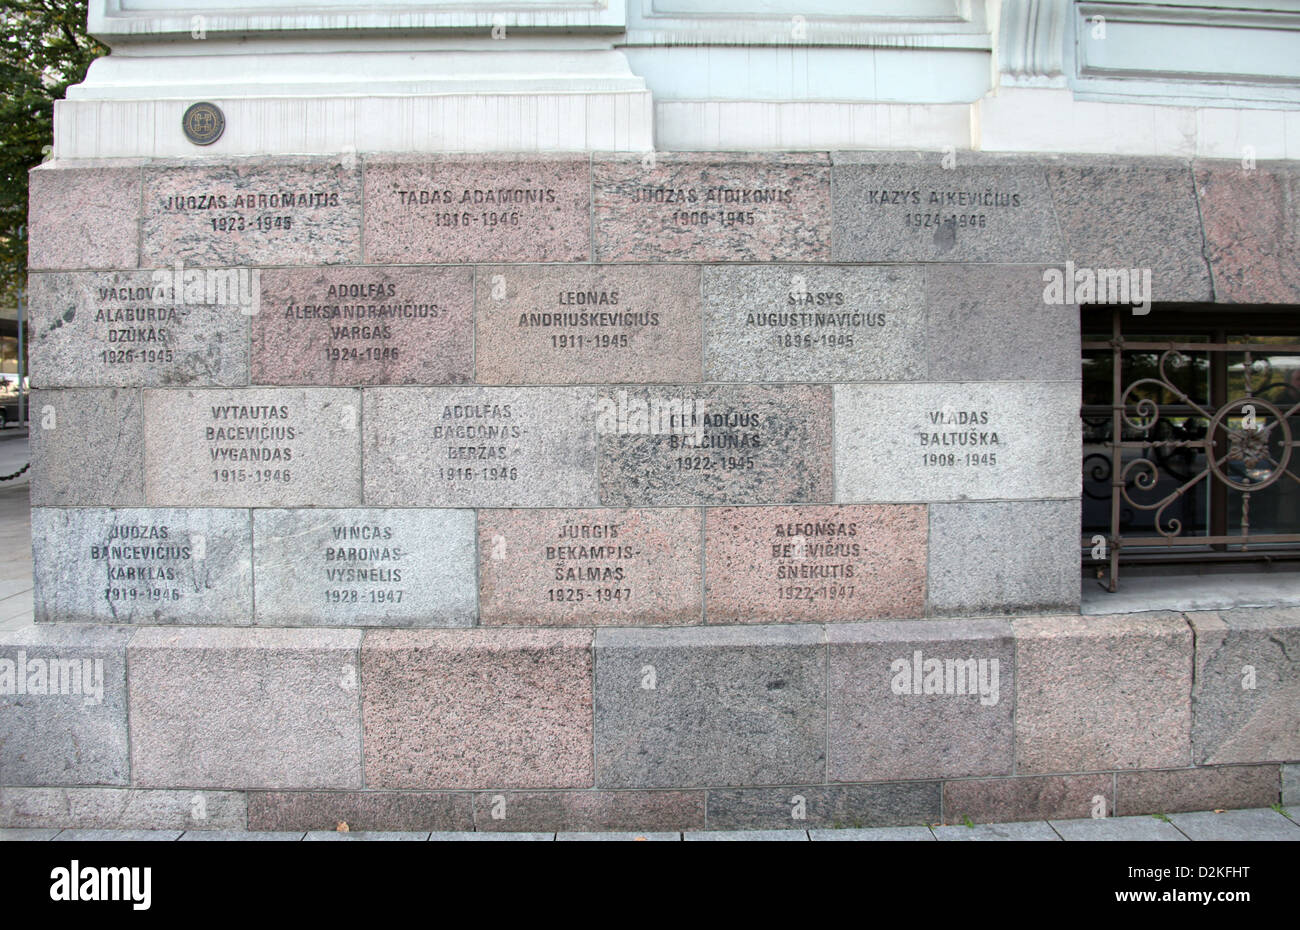 Exterior Wall of the Genocide Museum in Vilnius showing the names of victims. - Stock Image